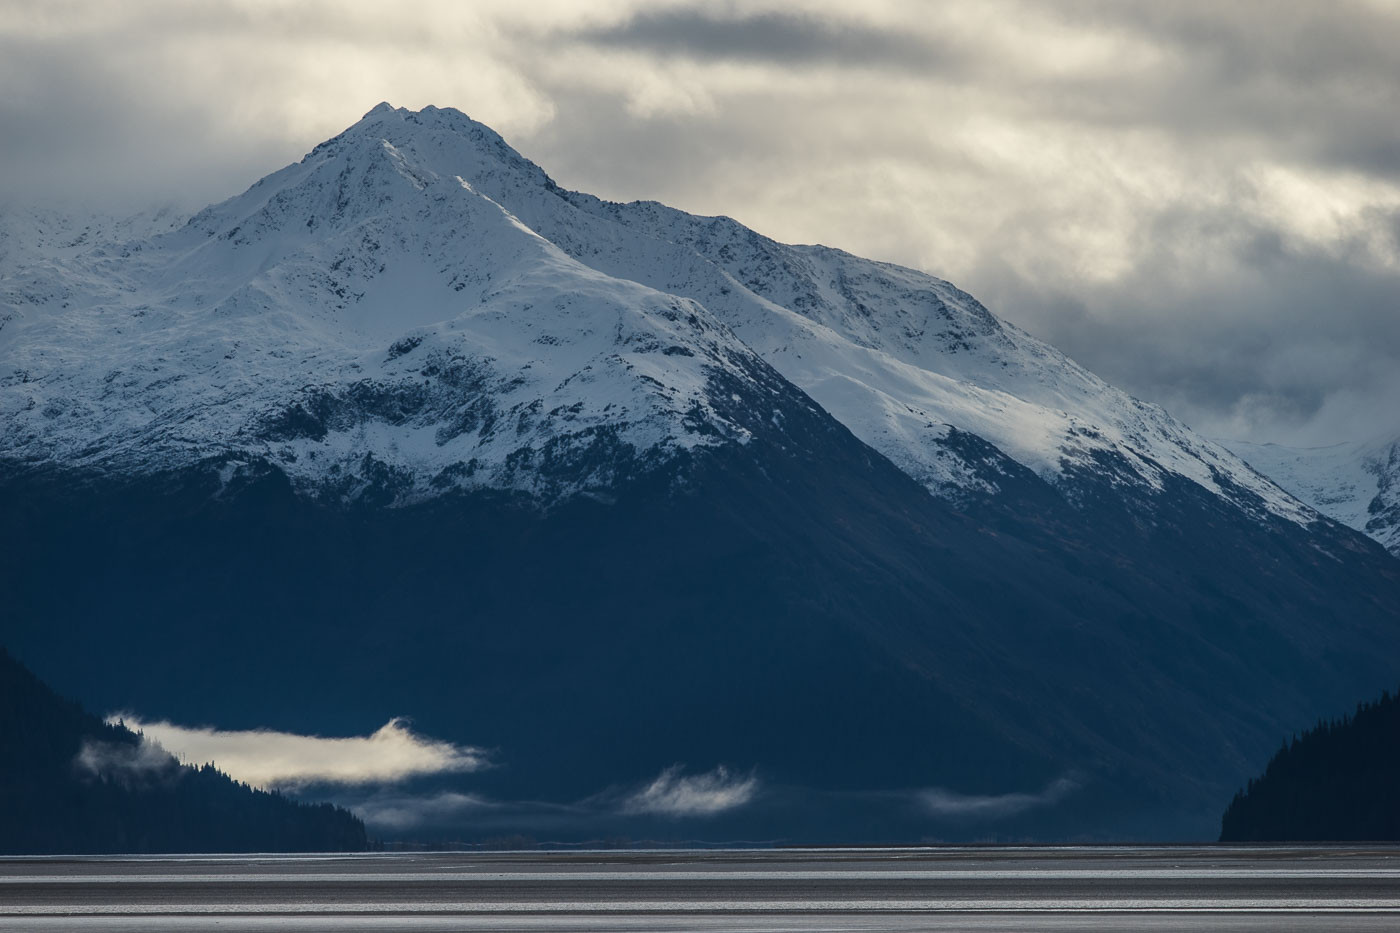 Snow-capped mountains in Alaska with the Tamron 150-600mm f/5-6.3